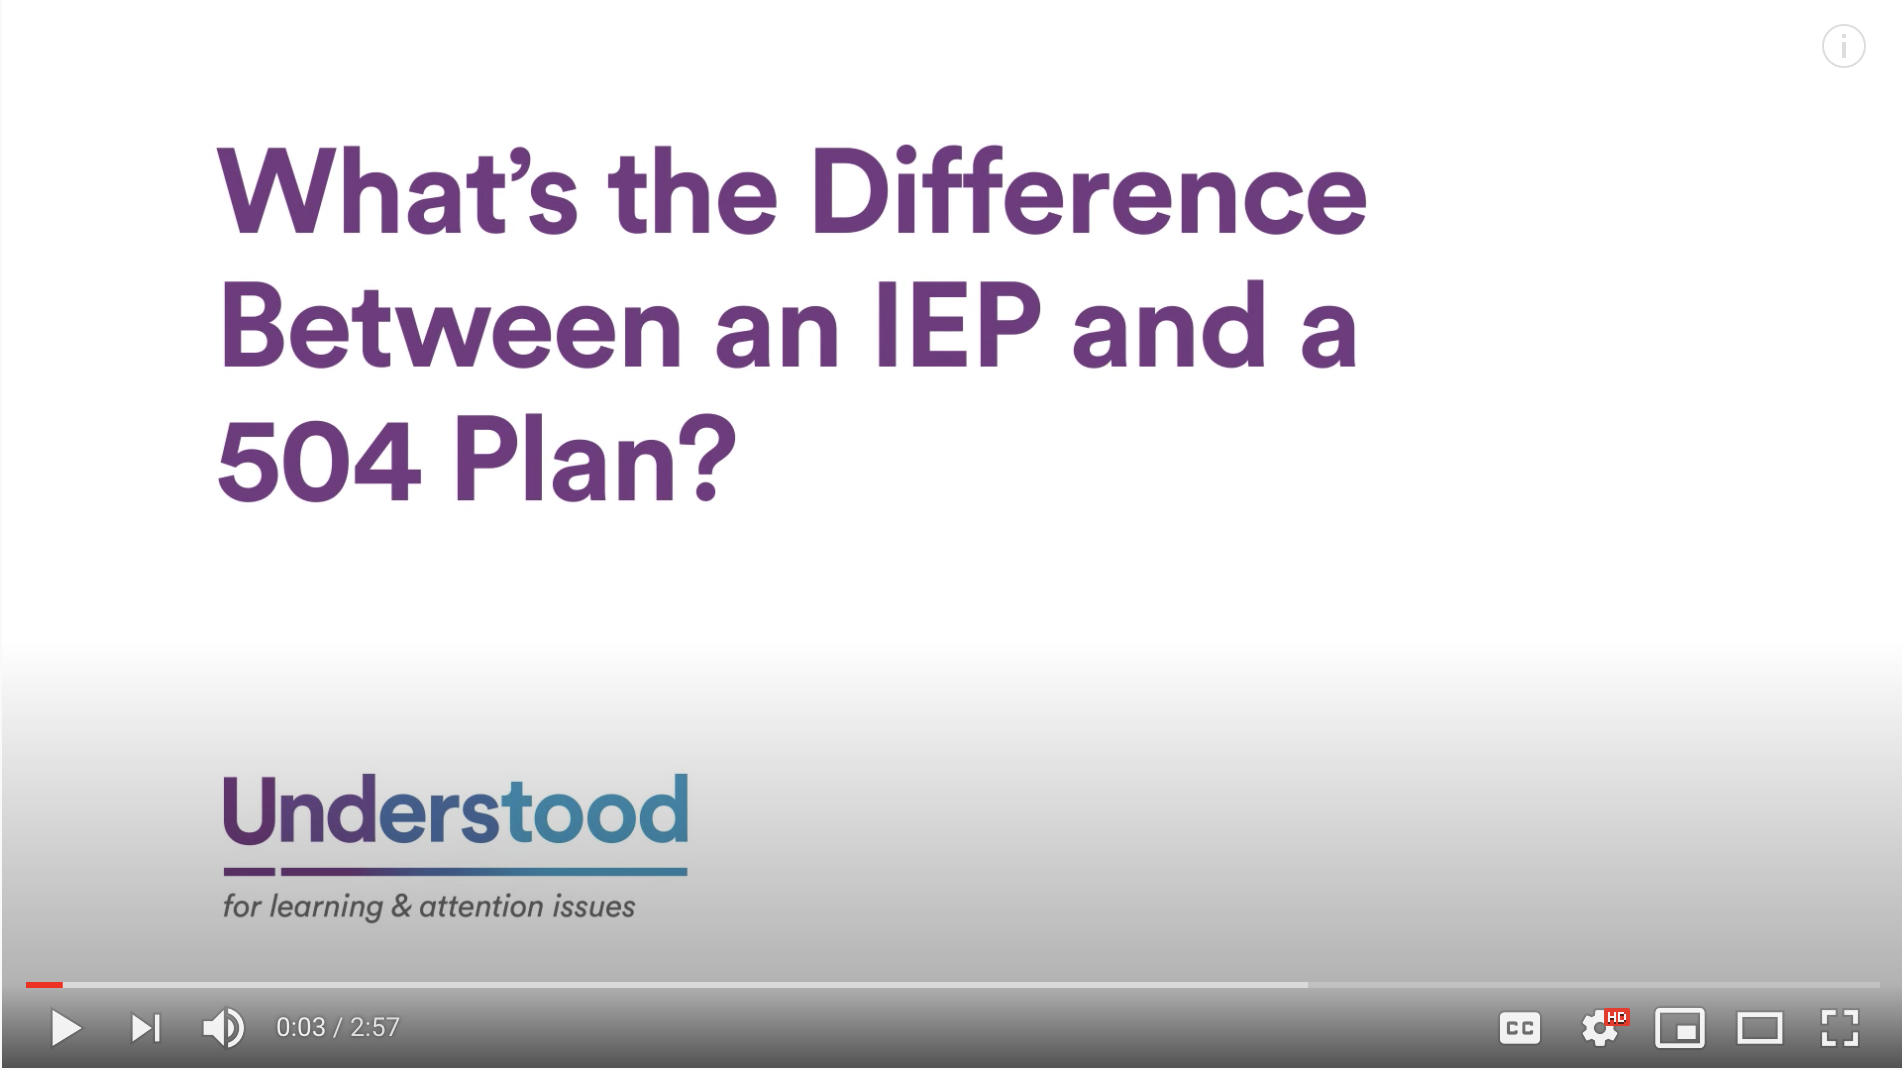 Screenshot for video What's the Difference Between an IEP and a 504 Plan?